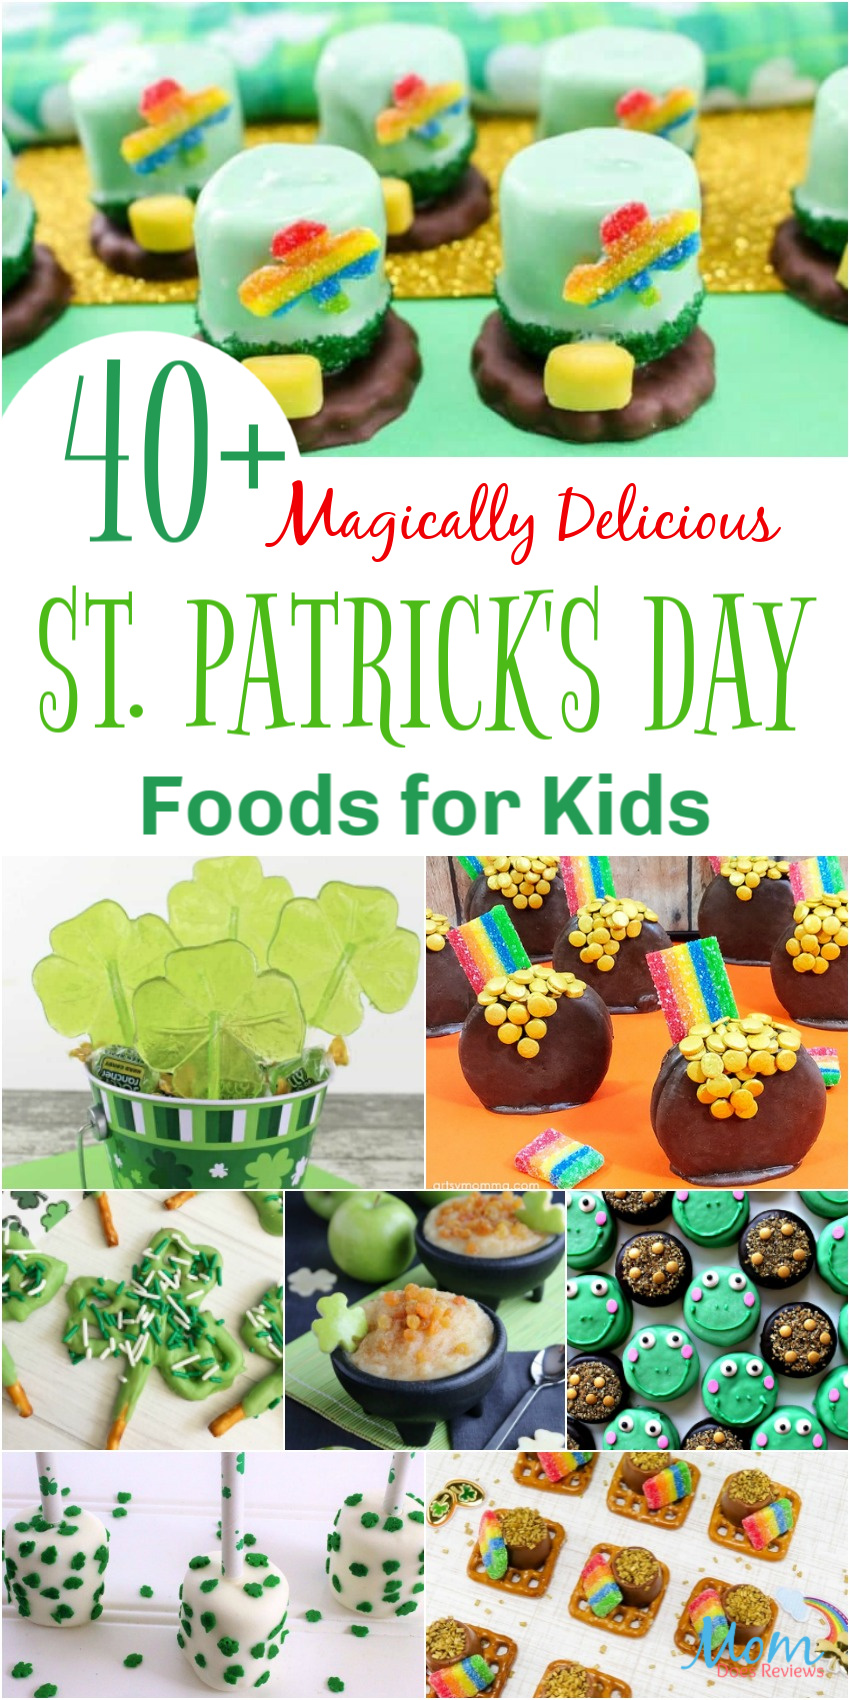 40+ Magically Delicious St. Patrick's Day Foods for Kids #funfood #stpatricksday #sweets